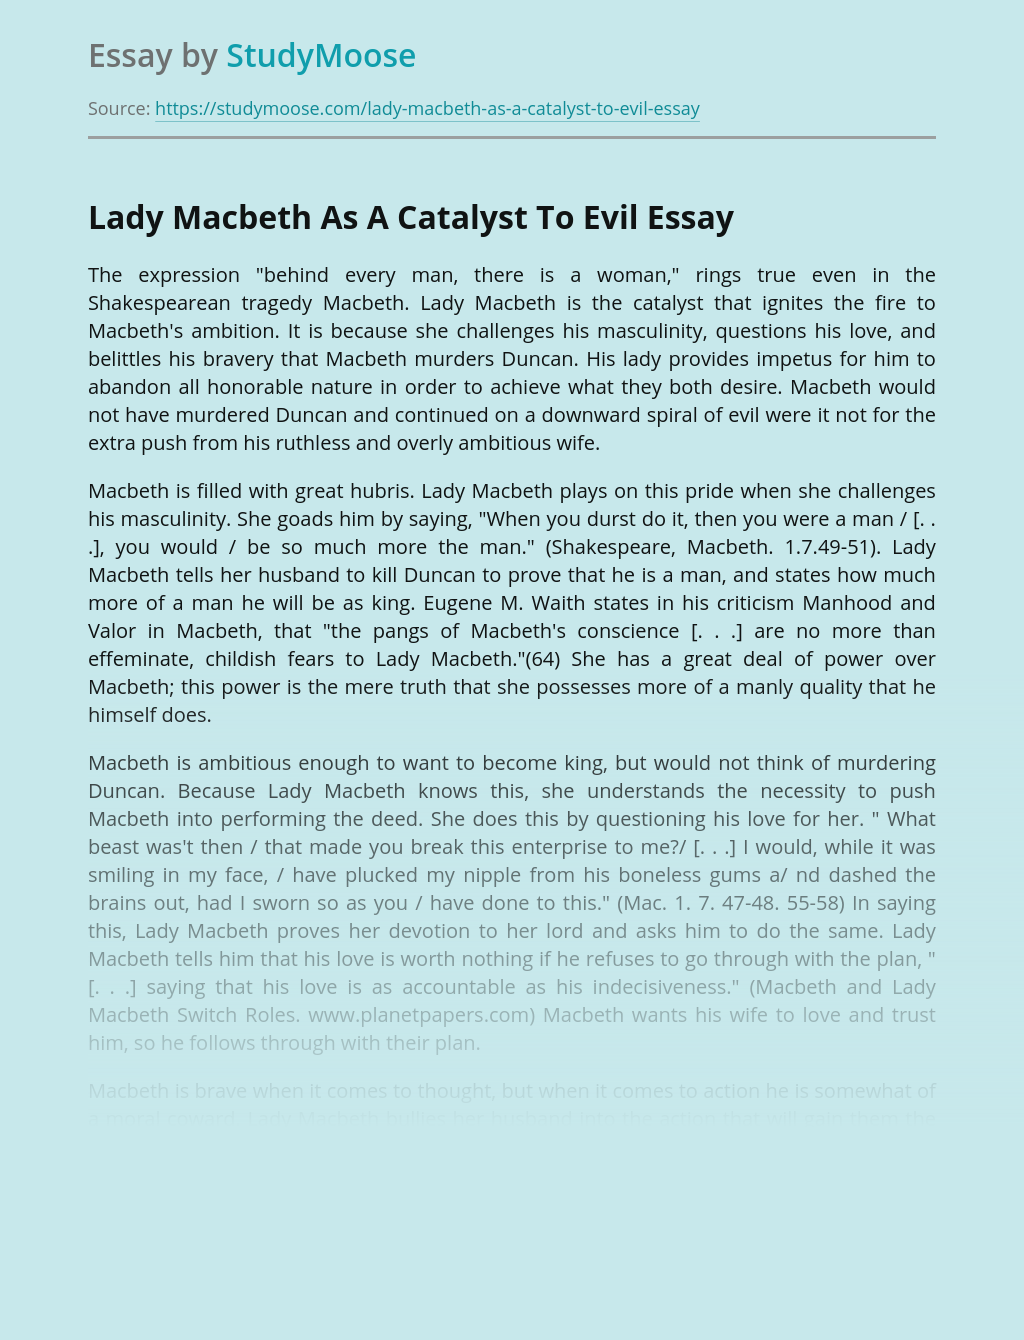 Lady Macbeth As A Catalyst To Evil